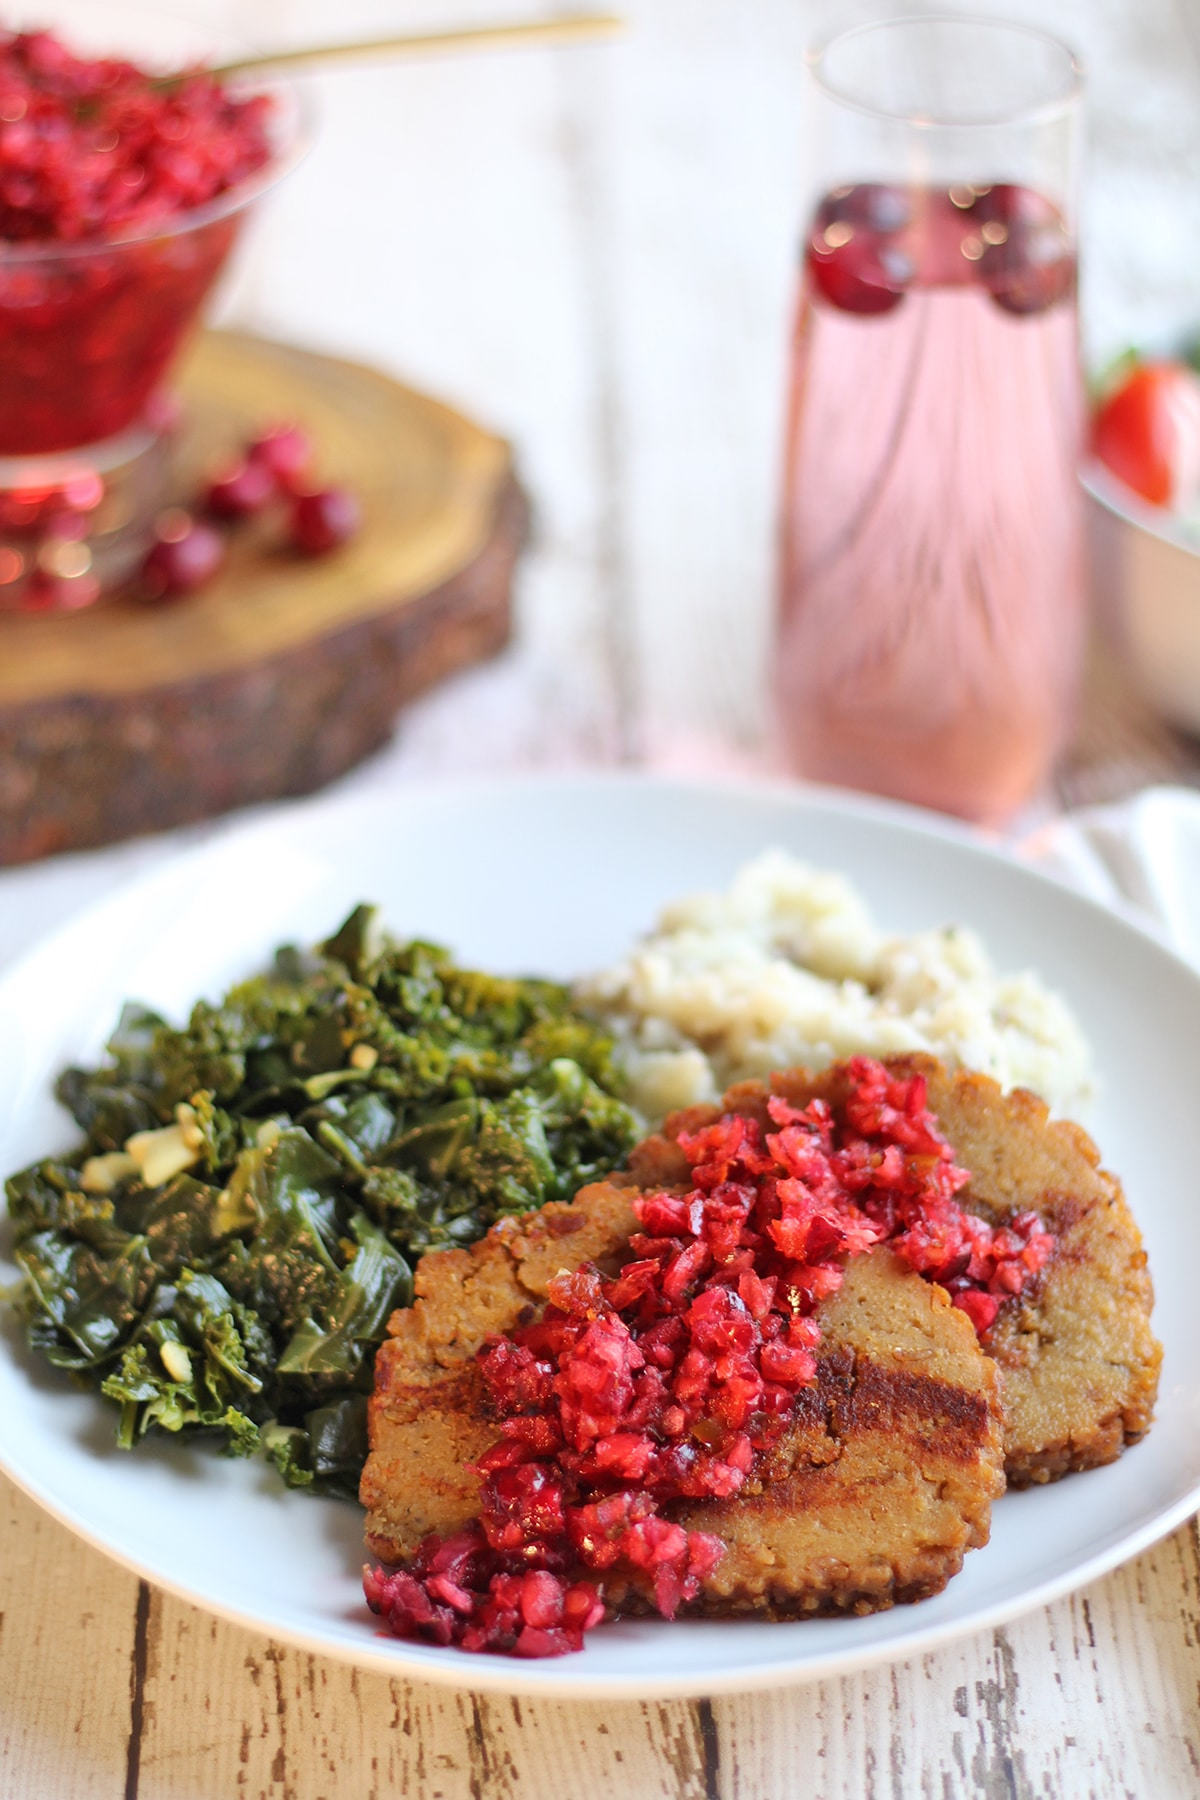 Celebration Roast slices on plate with collard greens, mashed potatoes, and cranberry salsa.